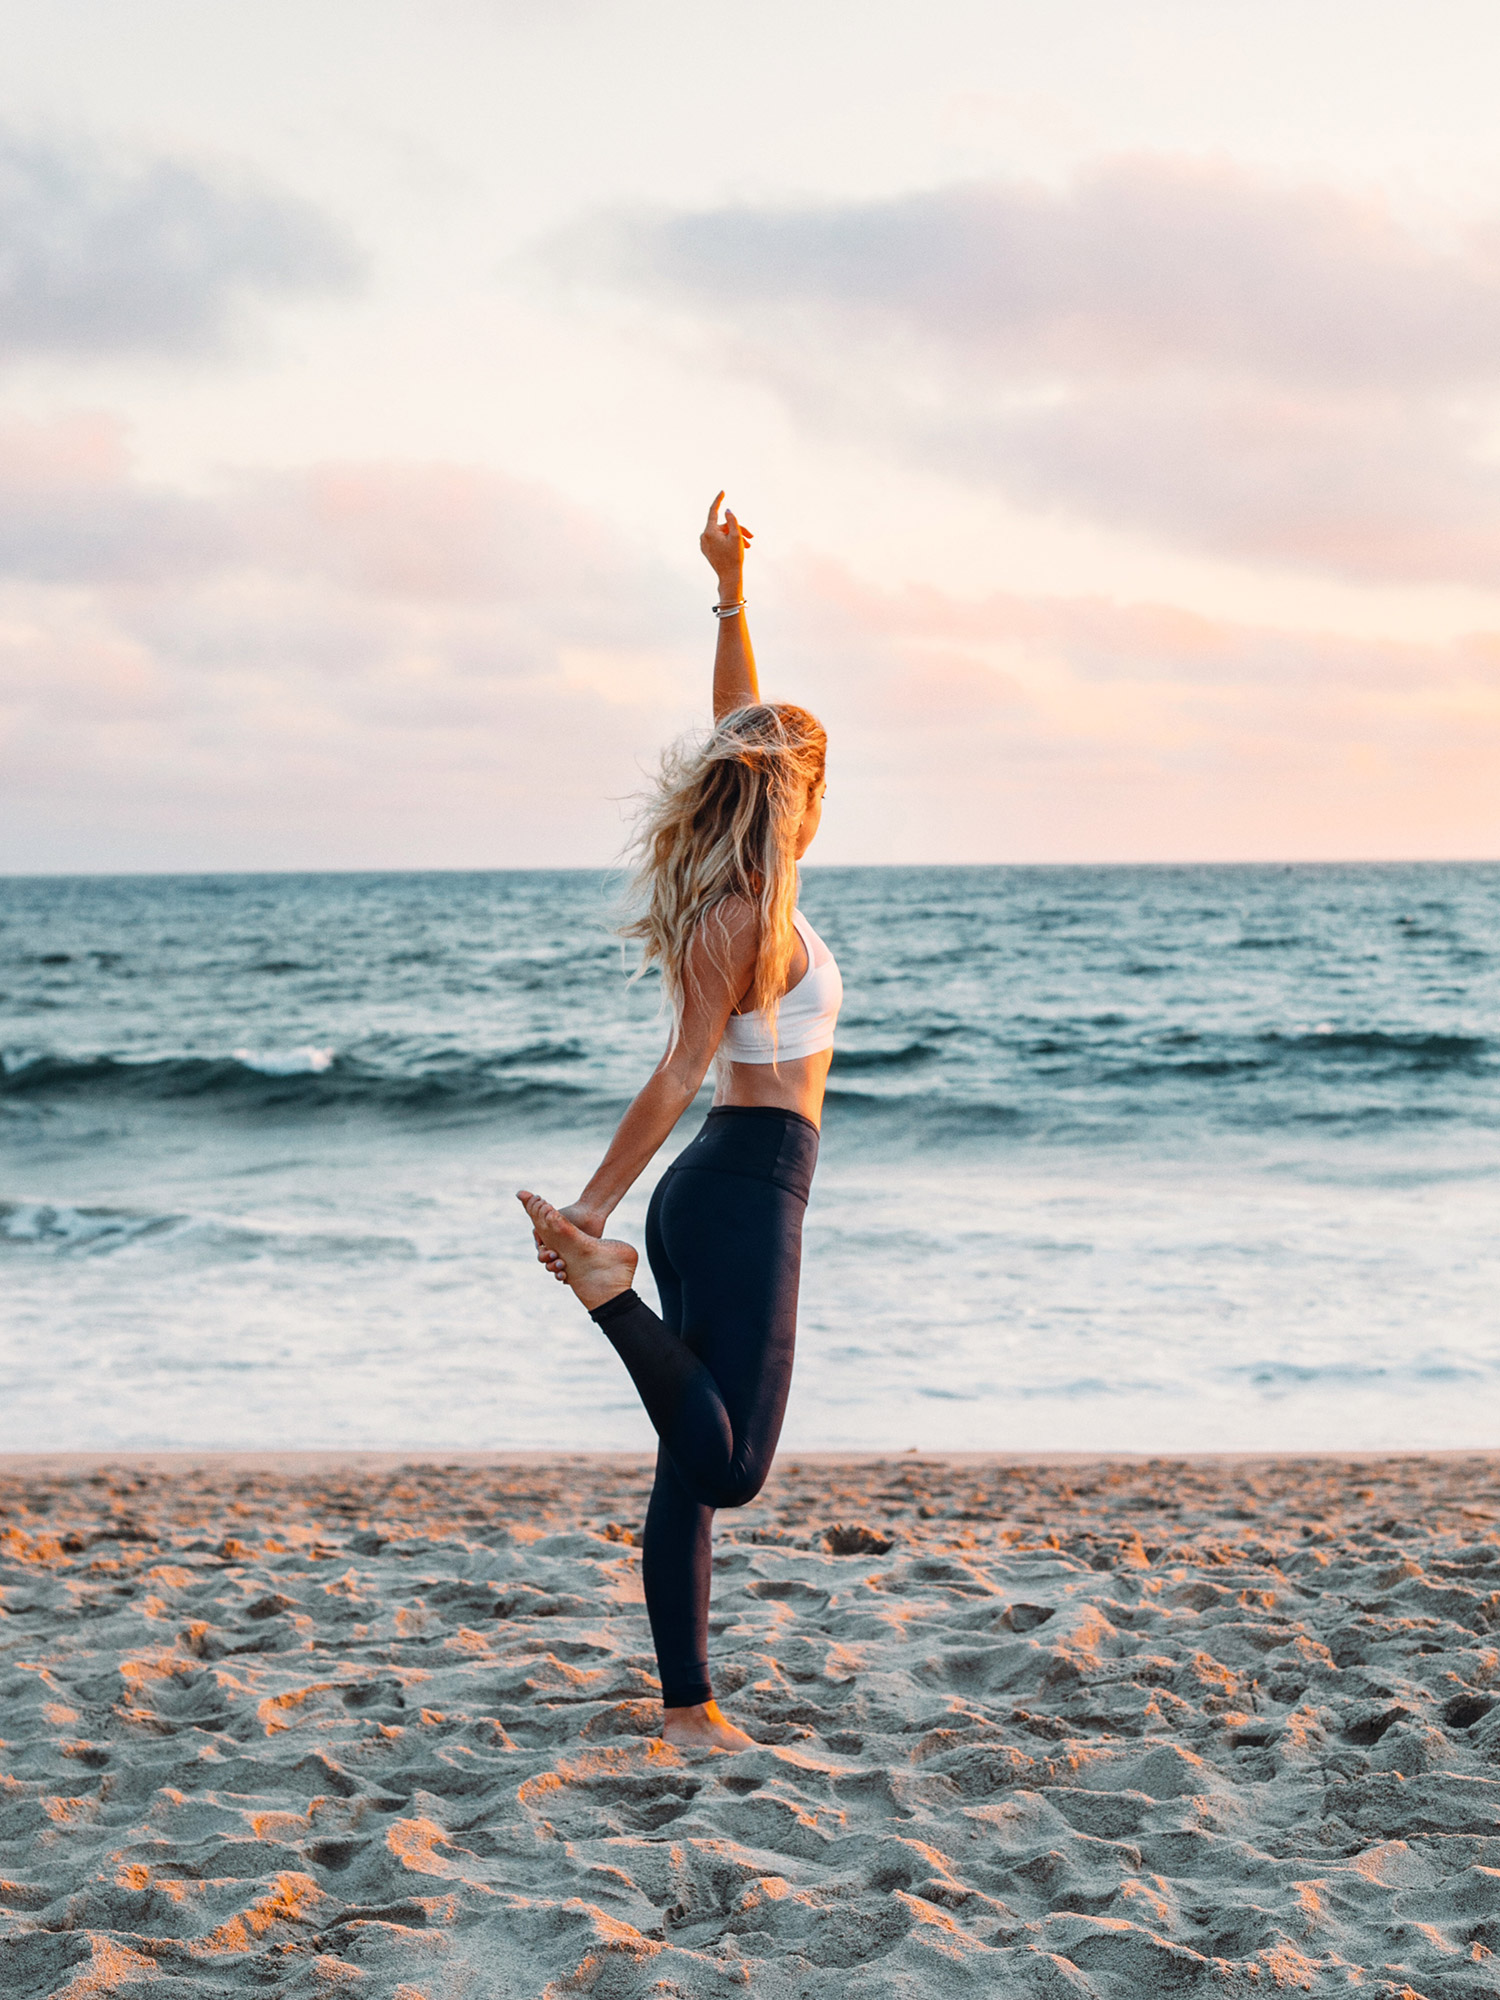 Cute Workout Outfit / Activewear / Lifestyle Photography / Venice Beach / Kelly Fiance Creative